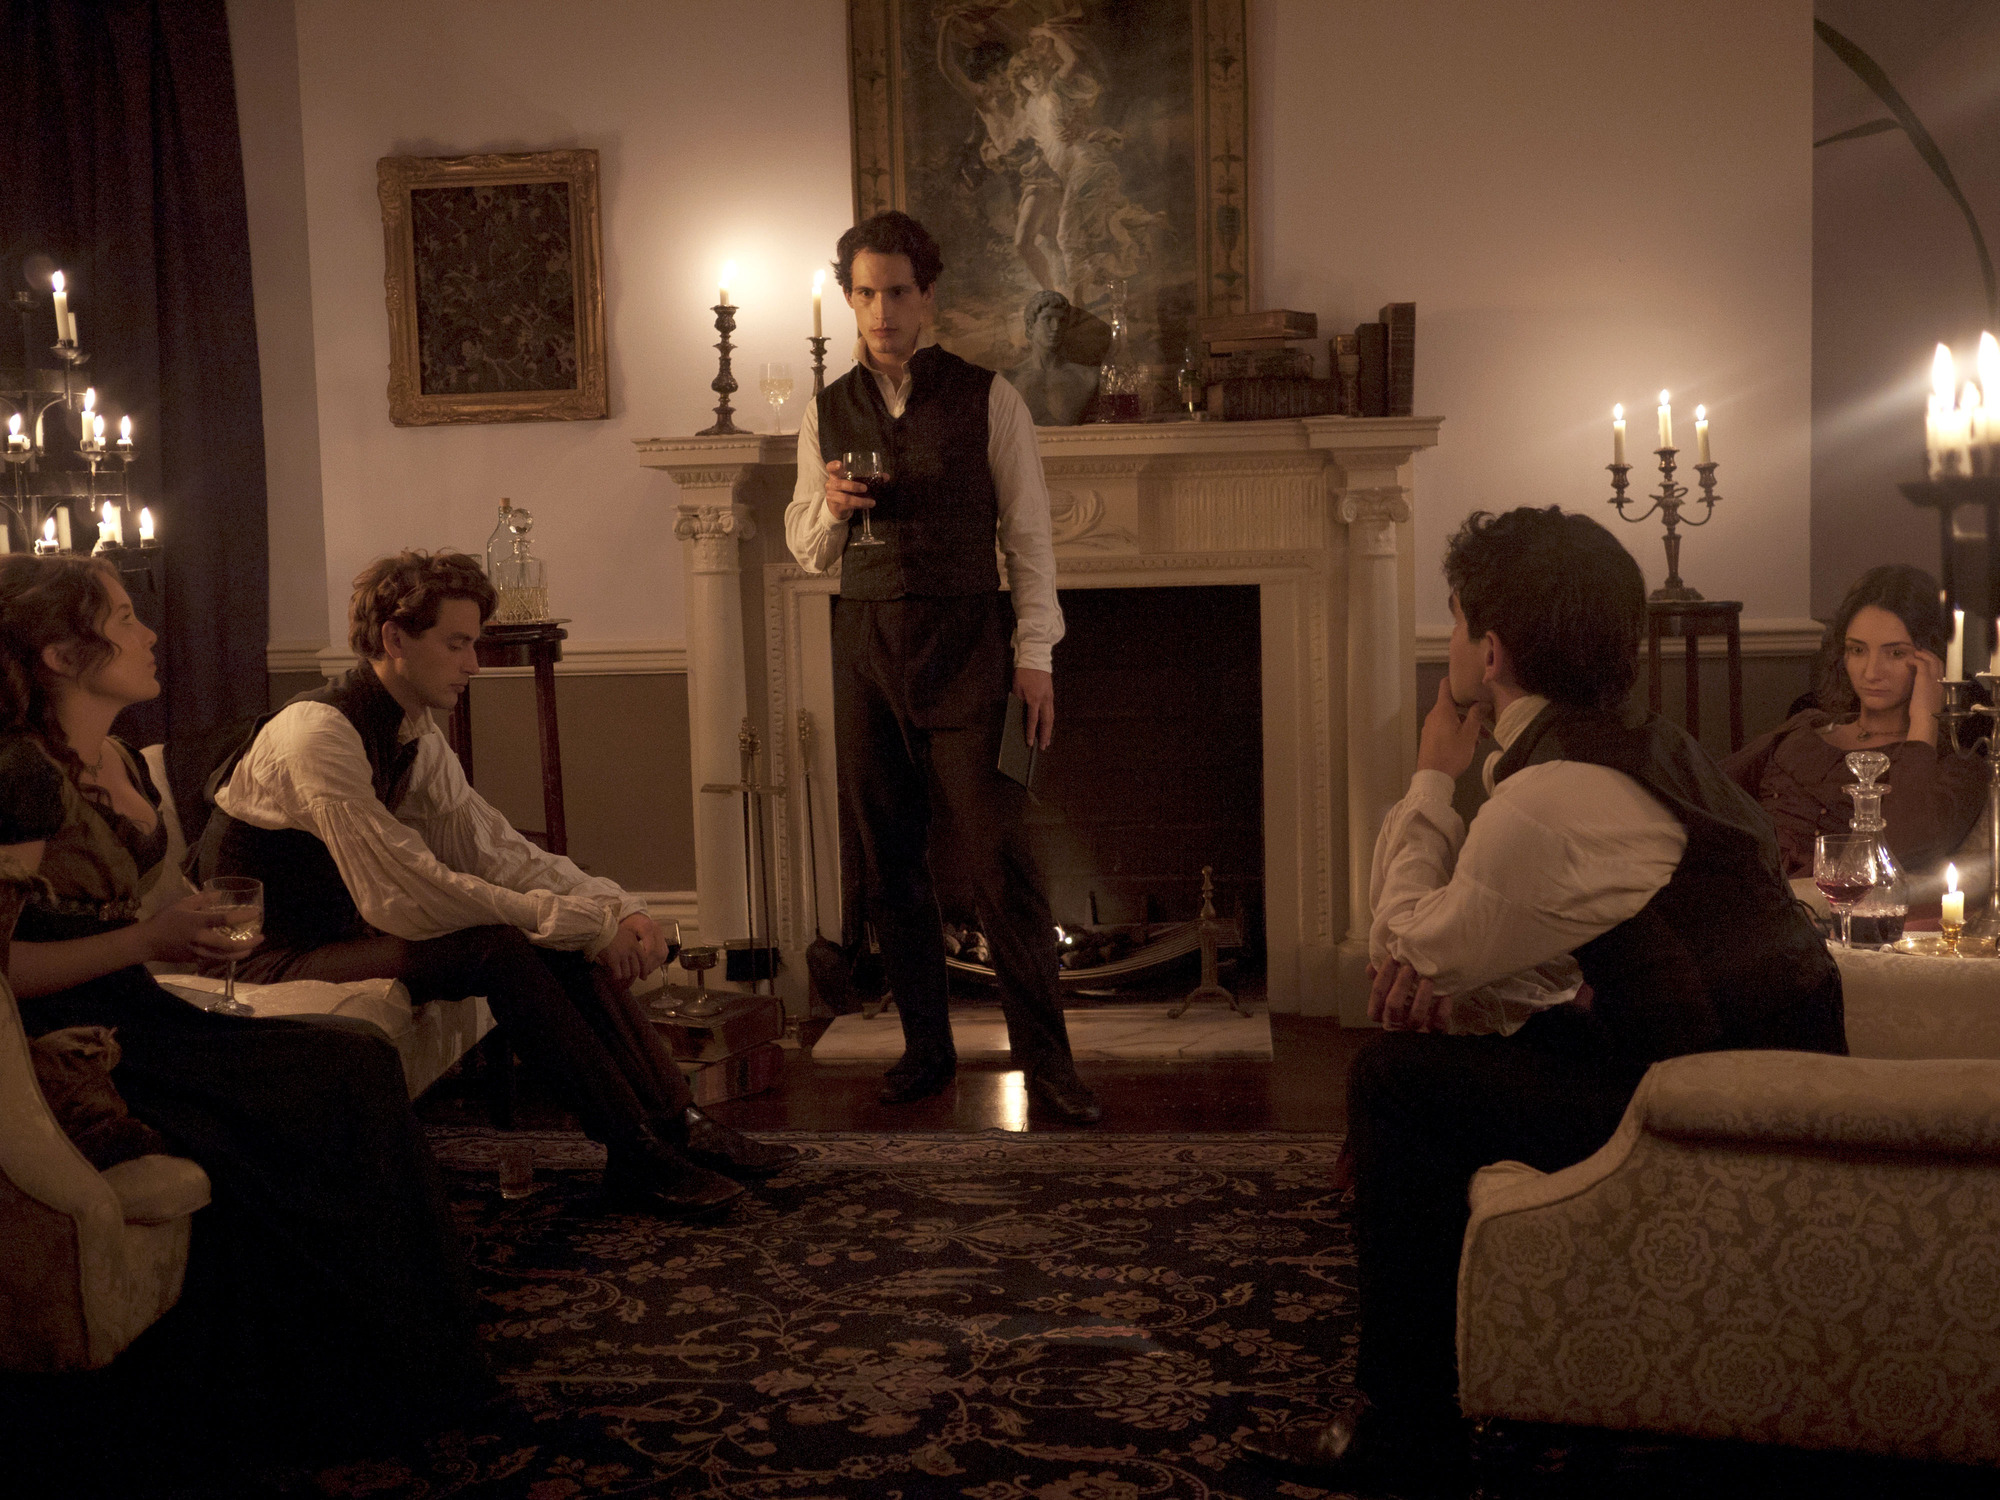 Programme Name: A Dark And Stormy Night: When Horror Was Born - TX: n/a - Episode: n/a (No. n/a) - Picture Shows: (L-R) Claire Clairmont (CATHERINE LAMB), Percy Shelley (TIMOTHY RENOUF), Byron (ROB HEAPS), John Polidori (SAM SWANN), Mary Shelley (HANNAH TAYLOR GORDON) - (C) Oxford Scientific Films - Photographer: Mira Aroyo